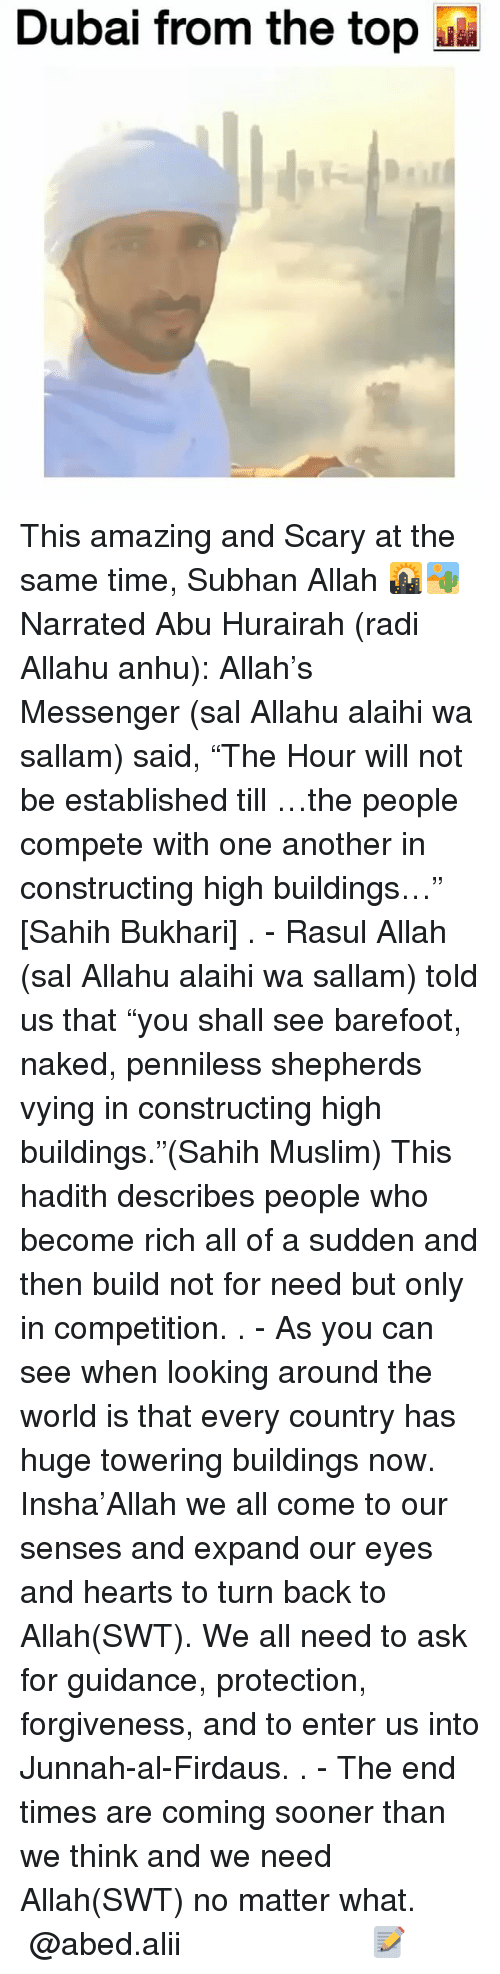 "Memes, Muslim, and Hearts: Dubai from the top This amazing and Scary at the same time, Subhan Allah 🌇🏜 Narrated Abu Hurairah (radi Allahu anhu): Allah's Messenger (sal Allahu alaihi wa sallam) said, ""The Hour will not be established till …the people compete with one another in constructing high buildings…"" [Sahih Bukhari] . - Rasul Allah (sal Allahu alaihi wa sallam) told us that ""you shall see barefoot, naked, penniless shepherds vying in constructing high buildings.""(Sahih Muslim) This hadith describes people who become rich all of a sudden and then build not for need but only in competition. . - As you can see when looking around the world is that every country has huge towering buildings now. Insha'Allah we all come to our senses and expand our eyes and hearts to turn back to Allah(SWT). We all need to ask for guidance, protection, forgiveness, and to enter us into Junnah-al-Firdaus. . - The end times are coming sooner than we think and we need Allah(SWT) no matter what. ▃▃▃▃▃▃▃▃▃▃▃▃▃▃▃▃▃▃▃▃ @abed.alii 📝"